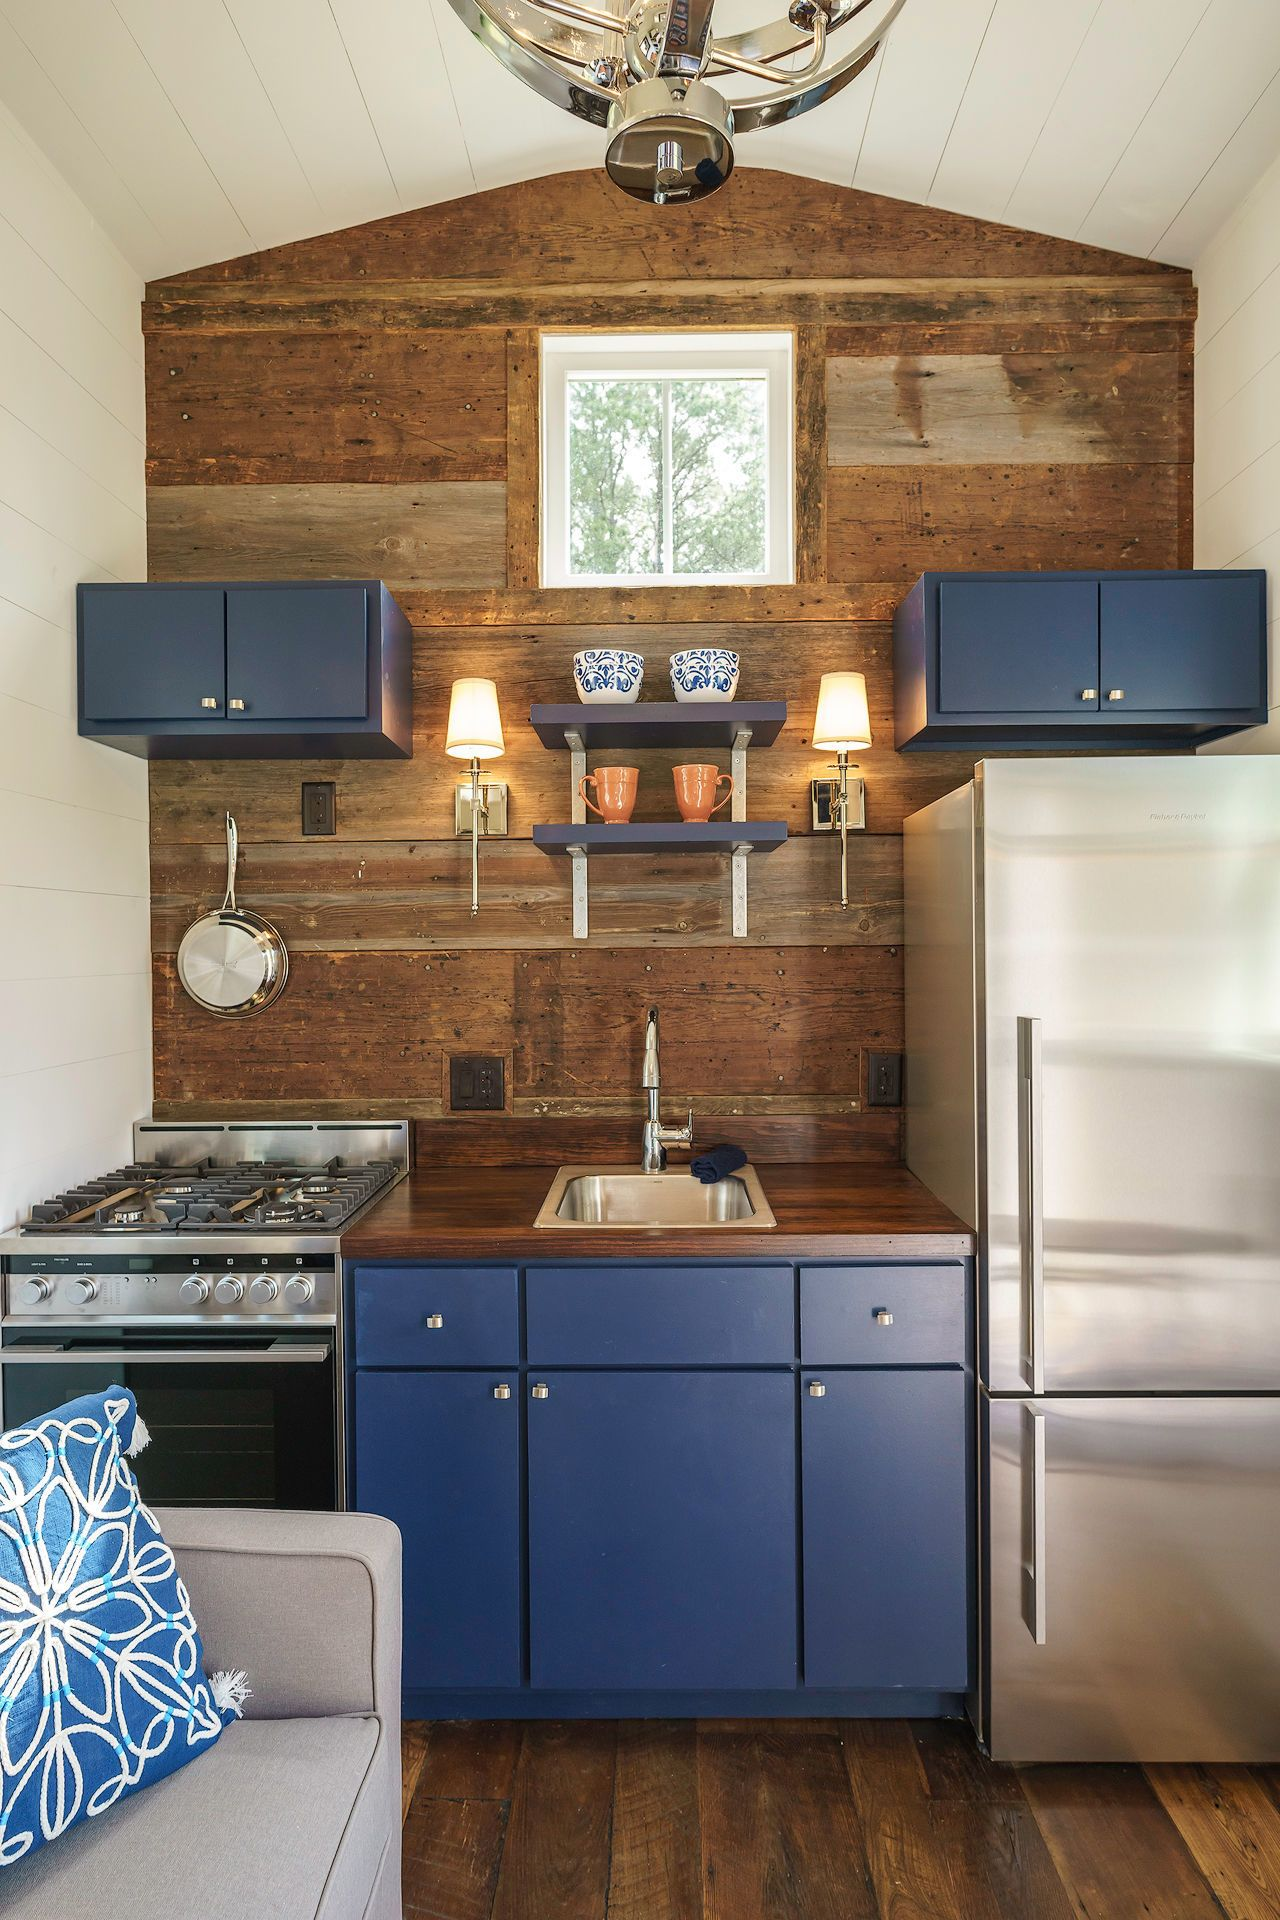 This Tiny House Breaks a Major Decorating Rule | Pinterest ...